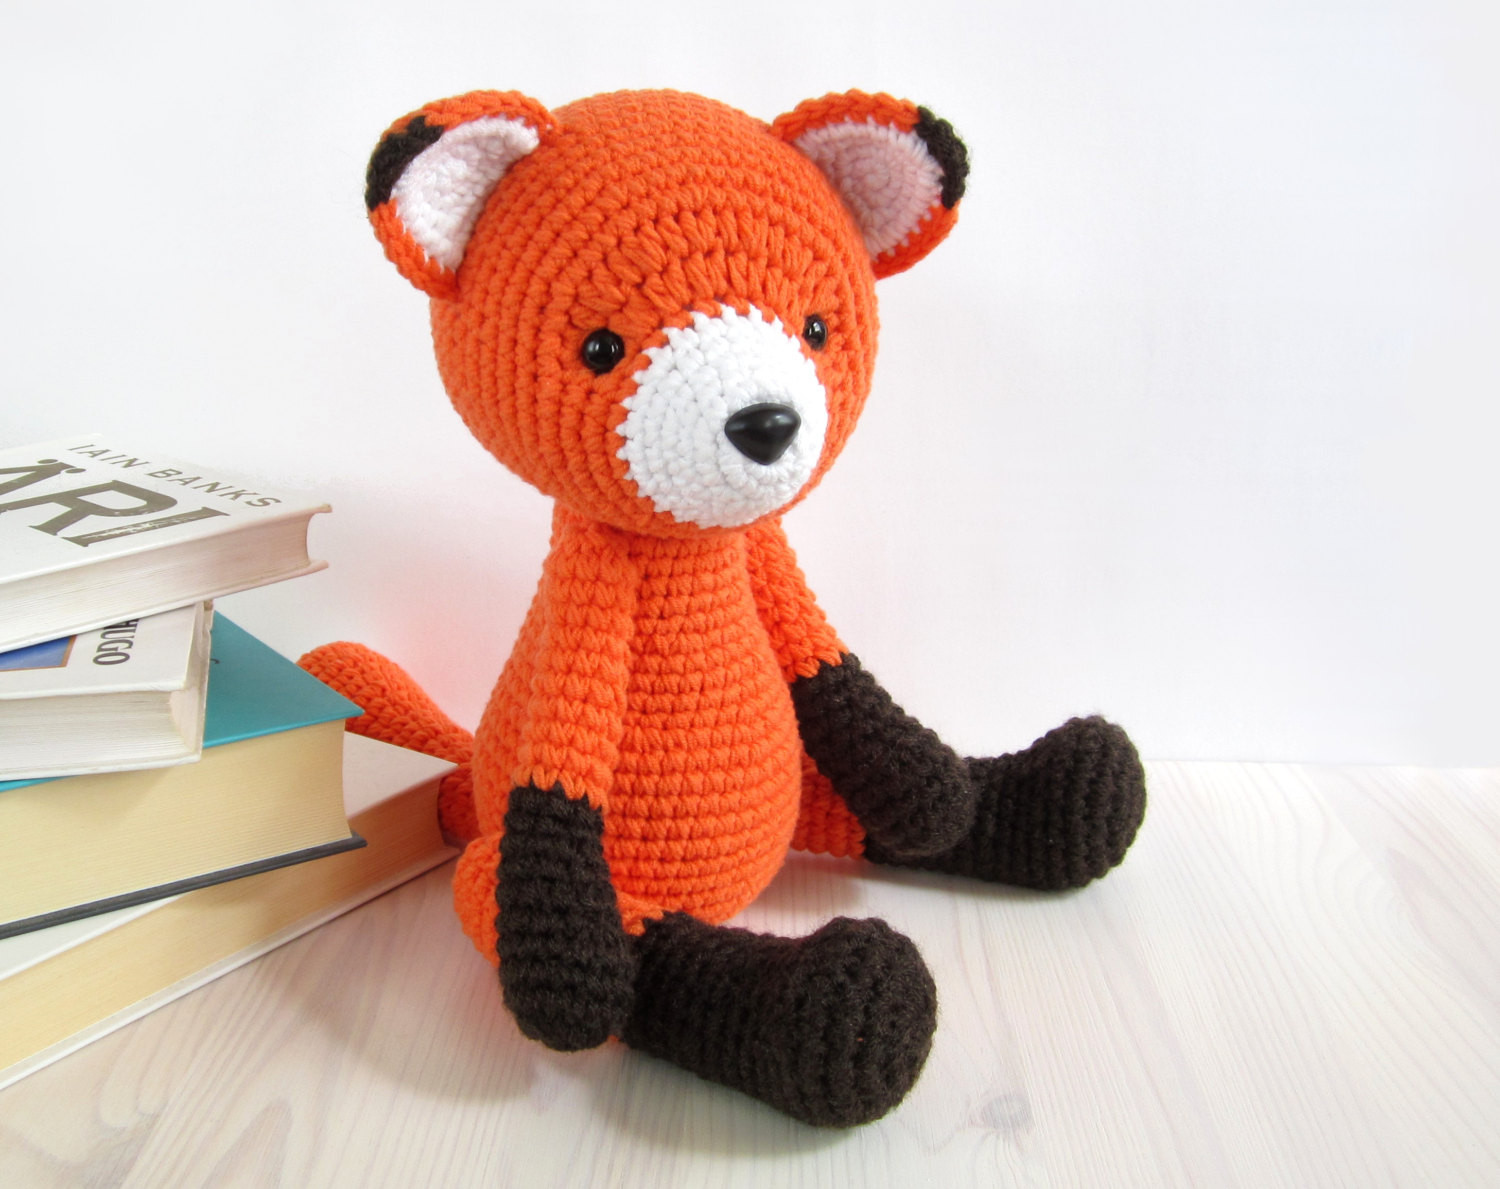 Crochet Animal Patterns Awesome Pattern Red Fox Amigurumi Fox Pattern Crochet by Kristitullus Of Incredible 48 Images Crochet Animal Patterns